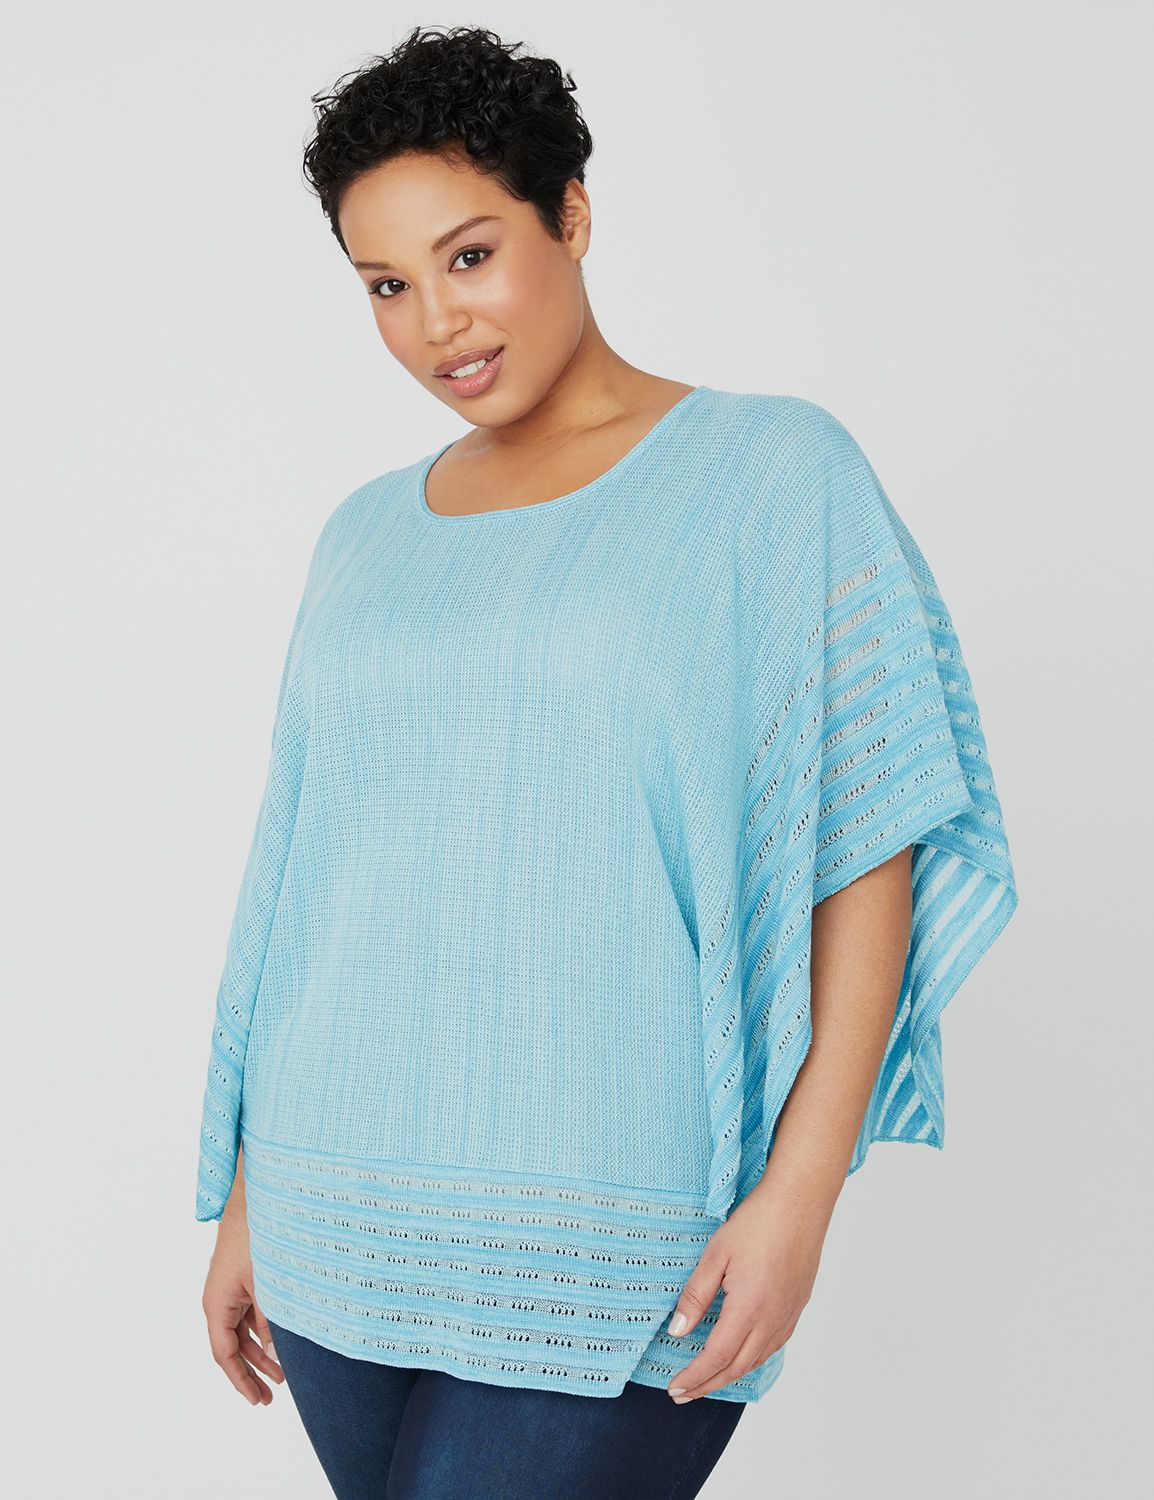 Rippled Edge Sweater 1083897 KimonoPullover 212 MP-300107441